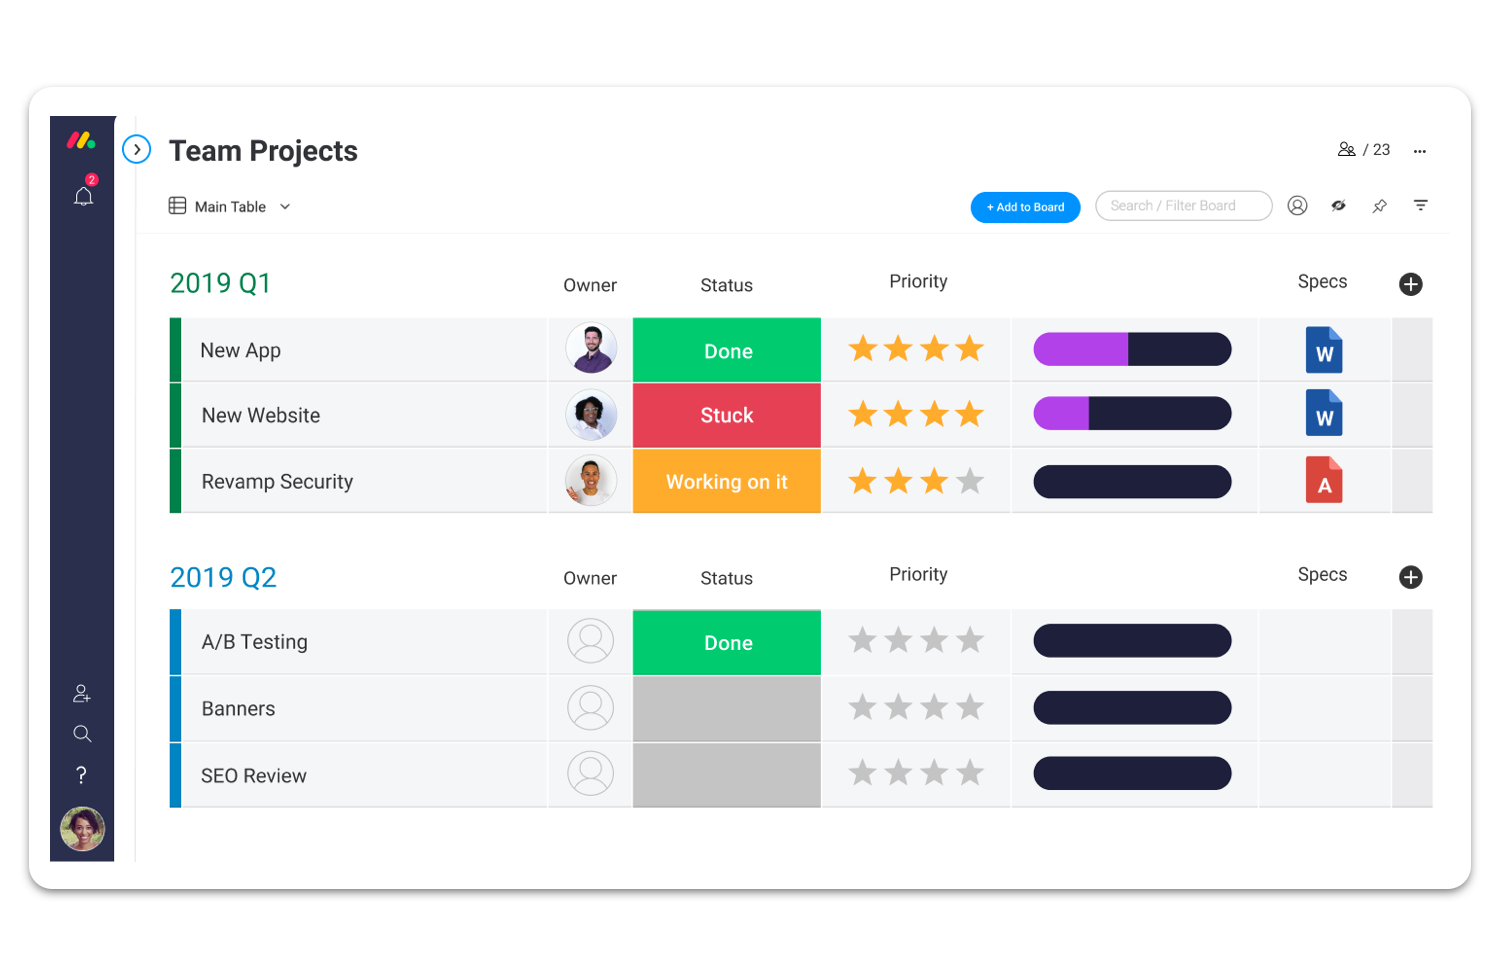 Monday Team Projects dashboard preview.